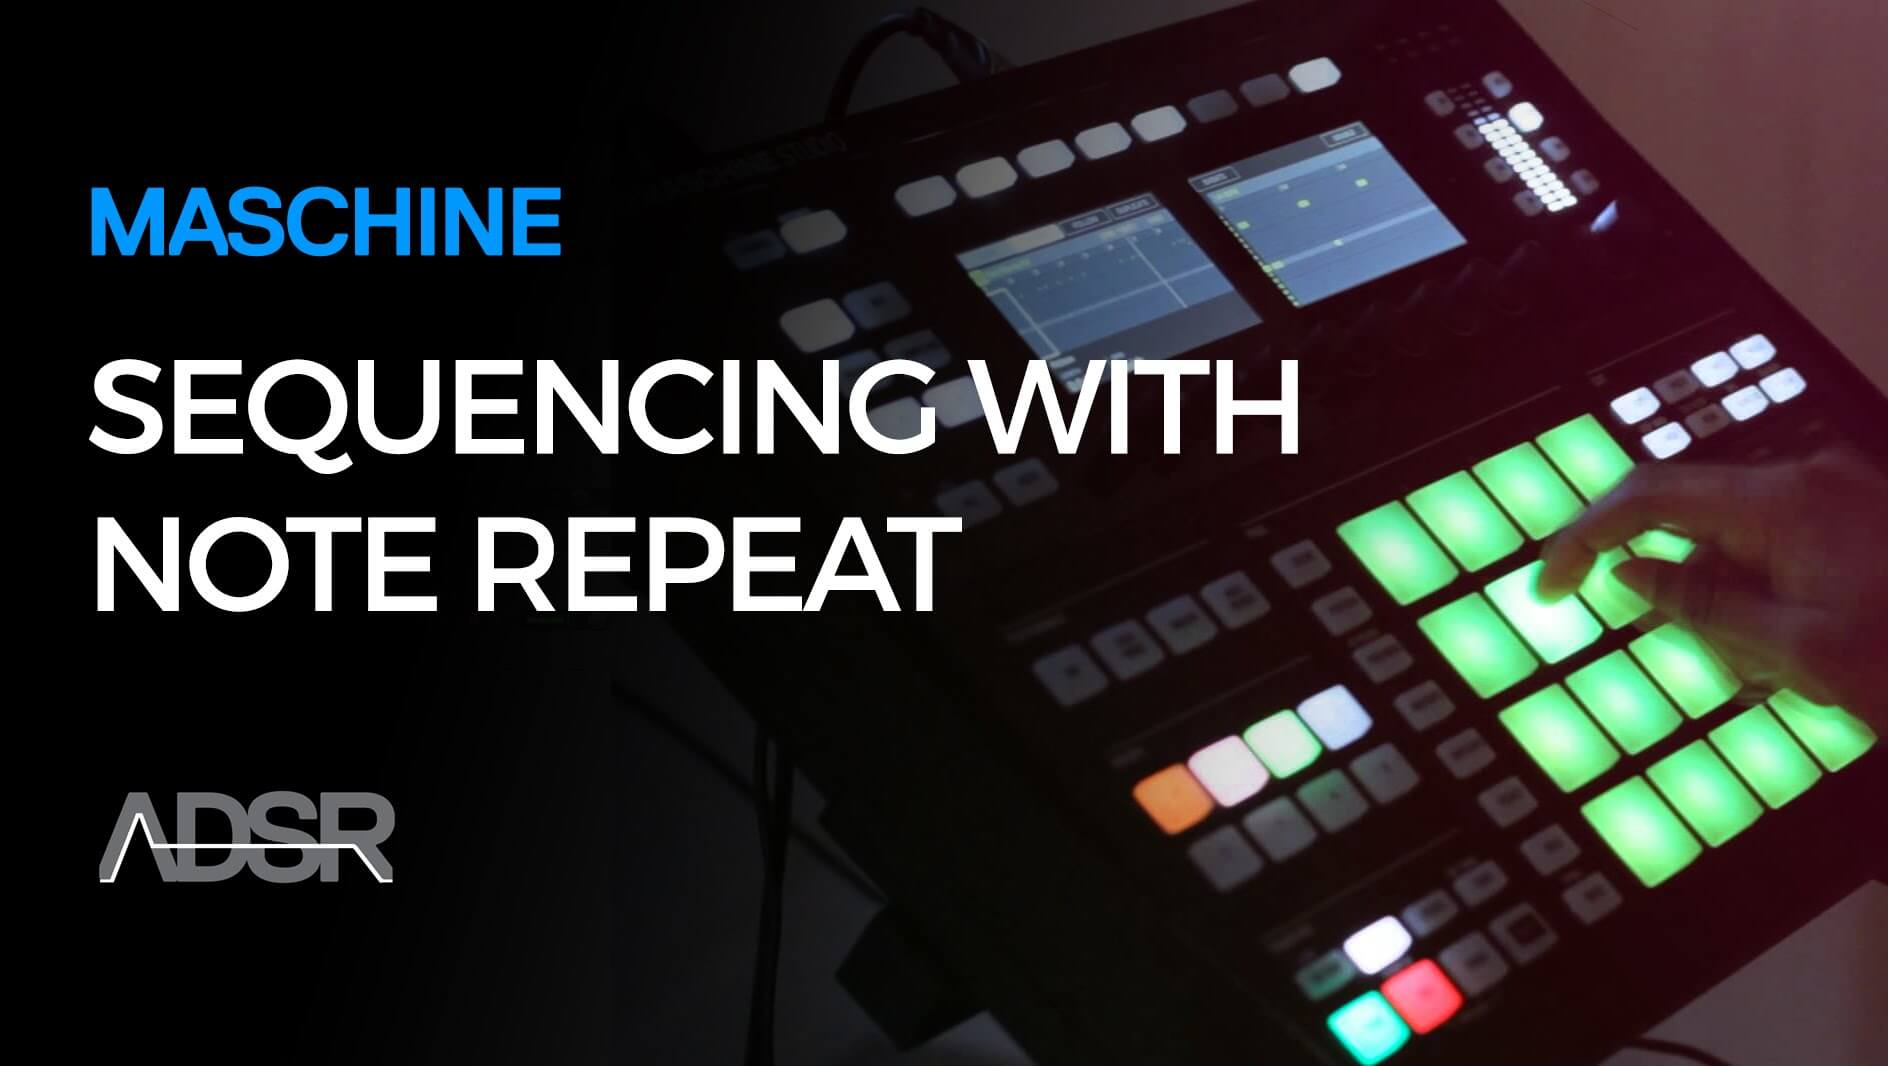 Bass Sequencing with Note Repeat on Maschine